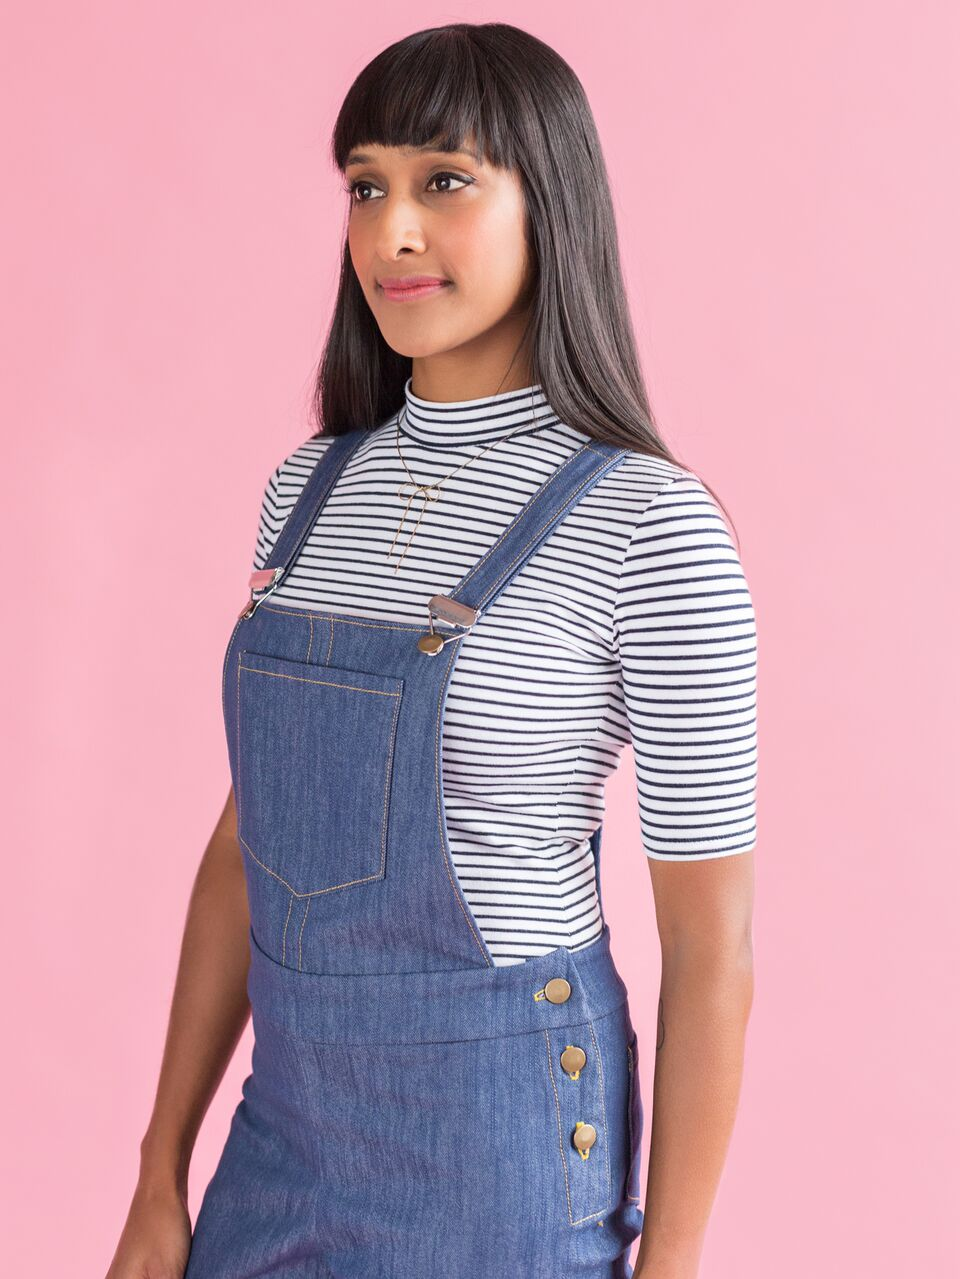 Mila Dungarees Sewing Pattern by Tilly and The Buttons